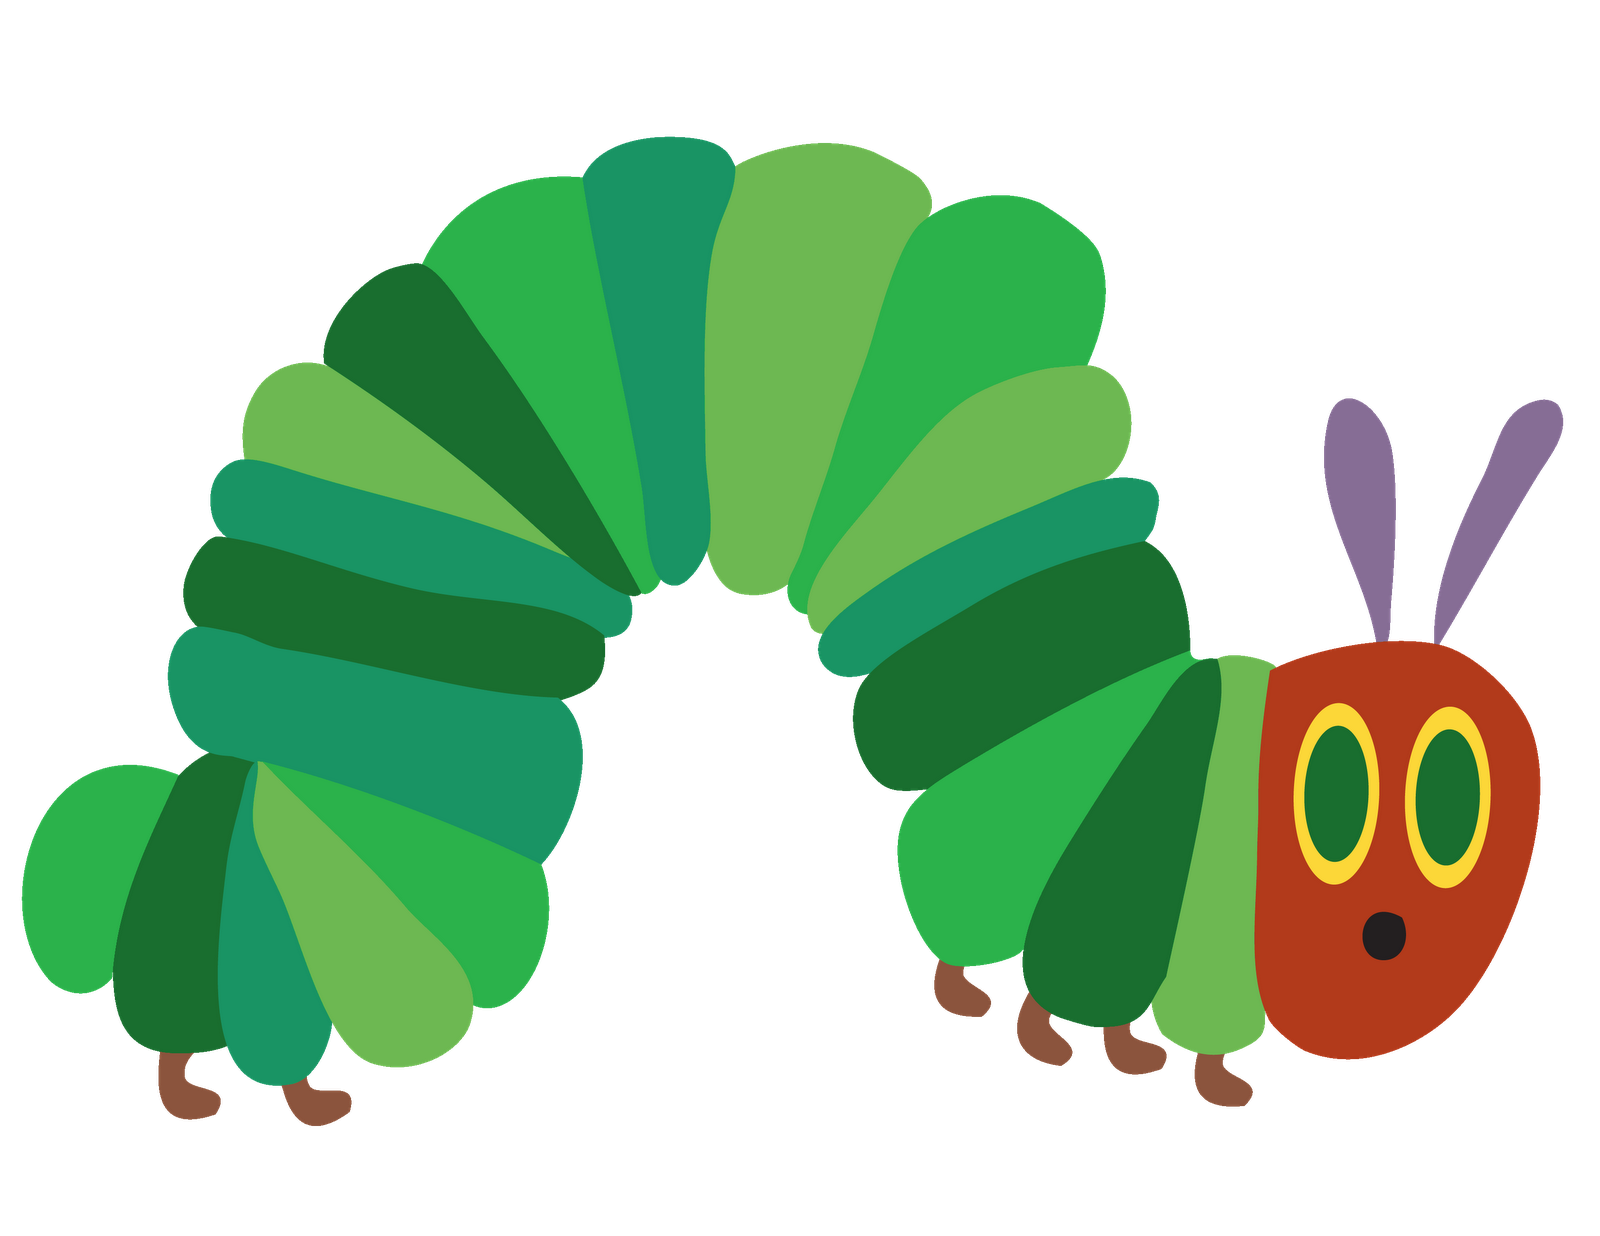 Hungry clipart food. The very caterpillar